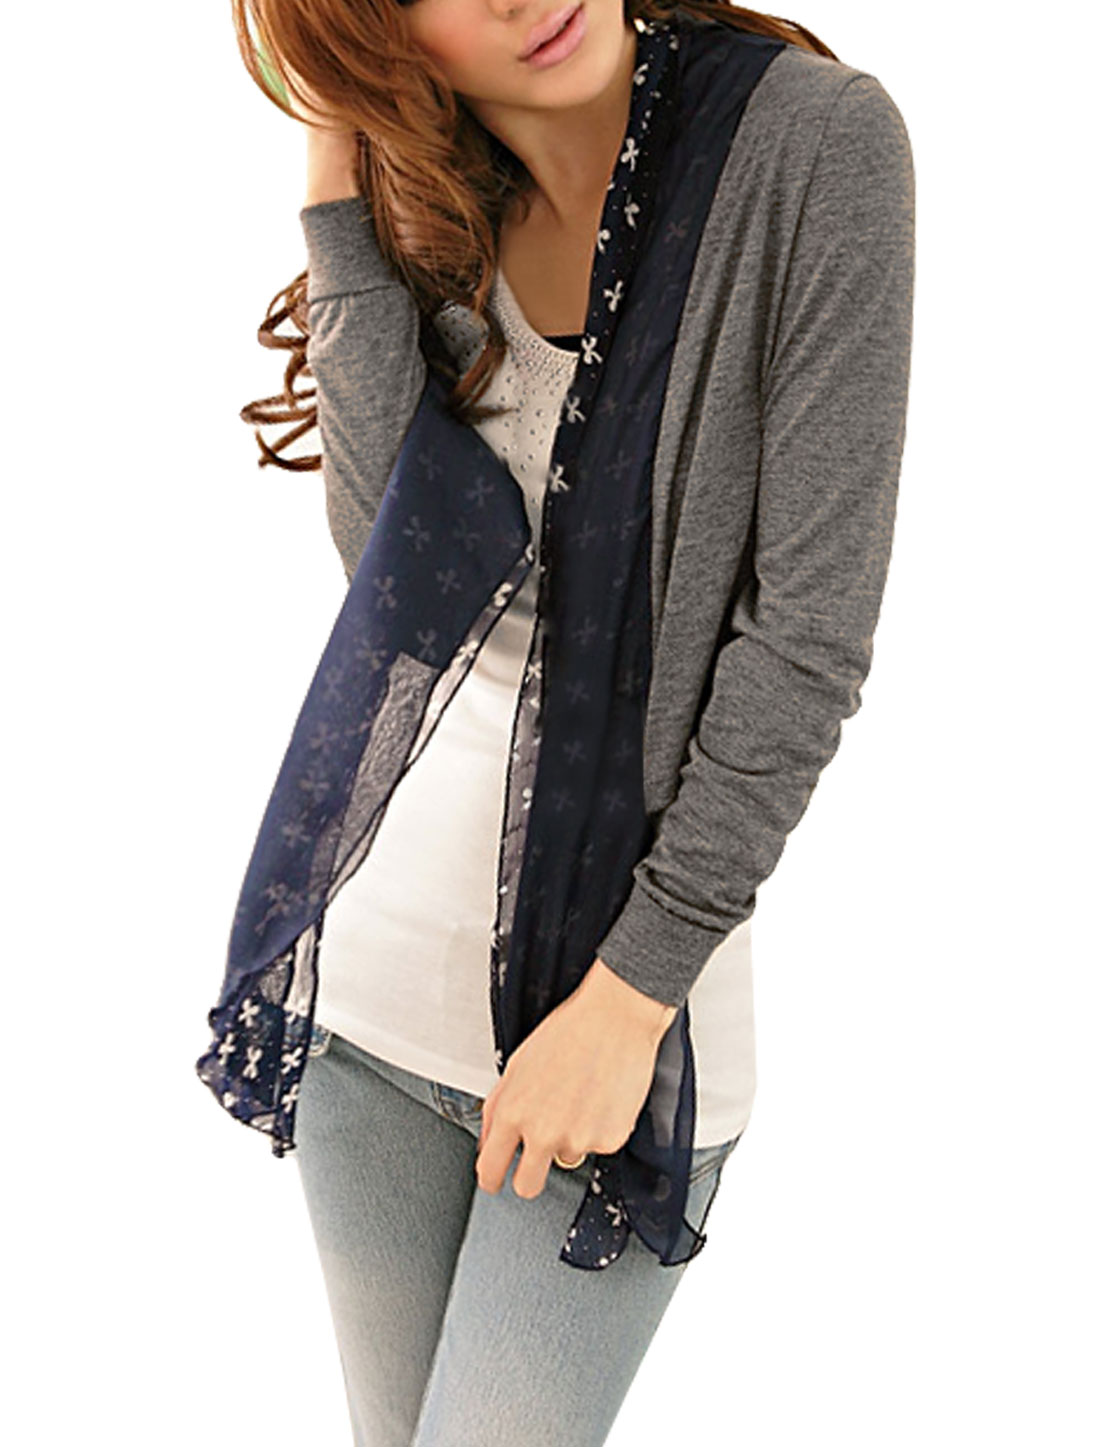 Heather Gray Bowknot Print Self Tie Strap Short Coat for Ladies